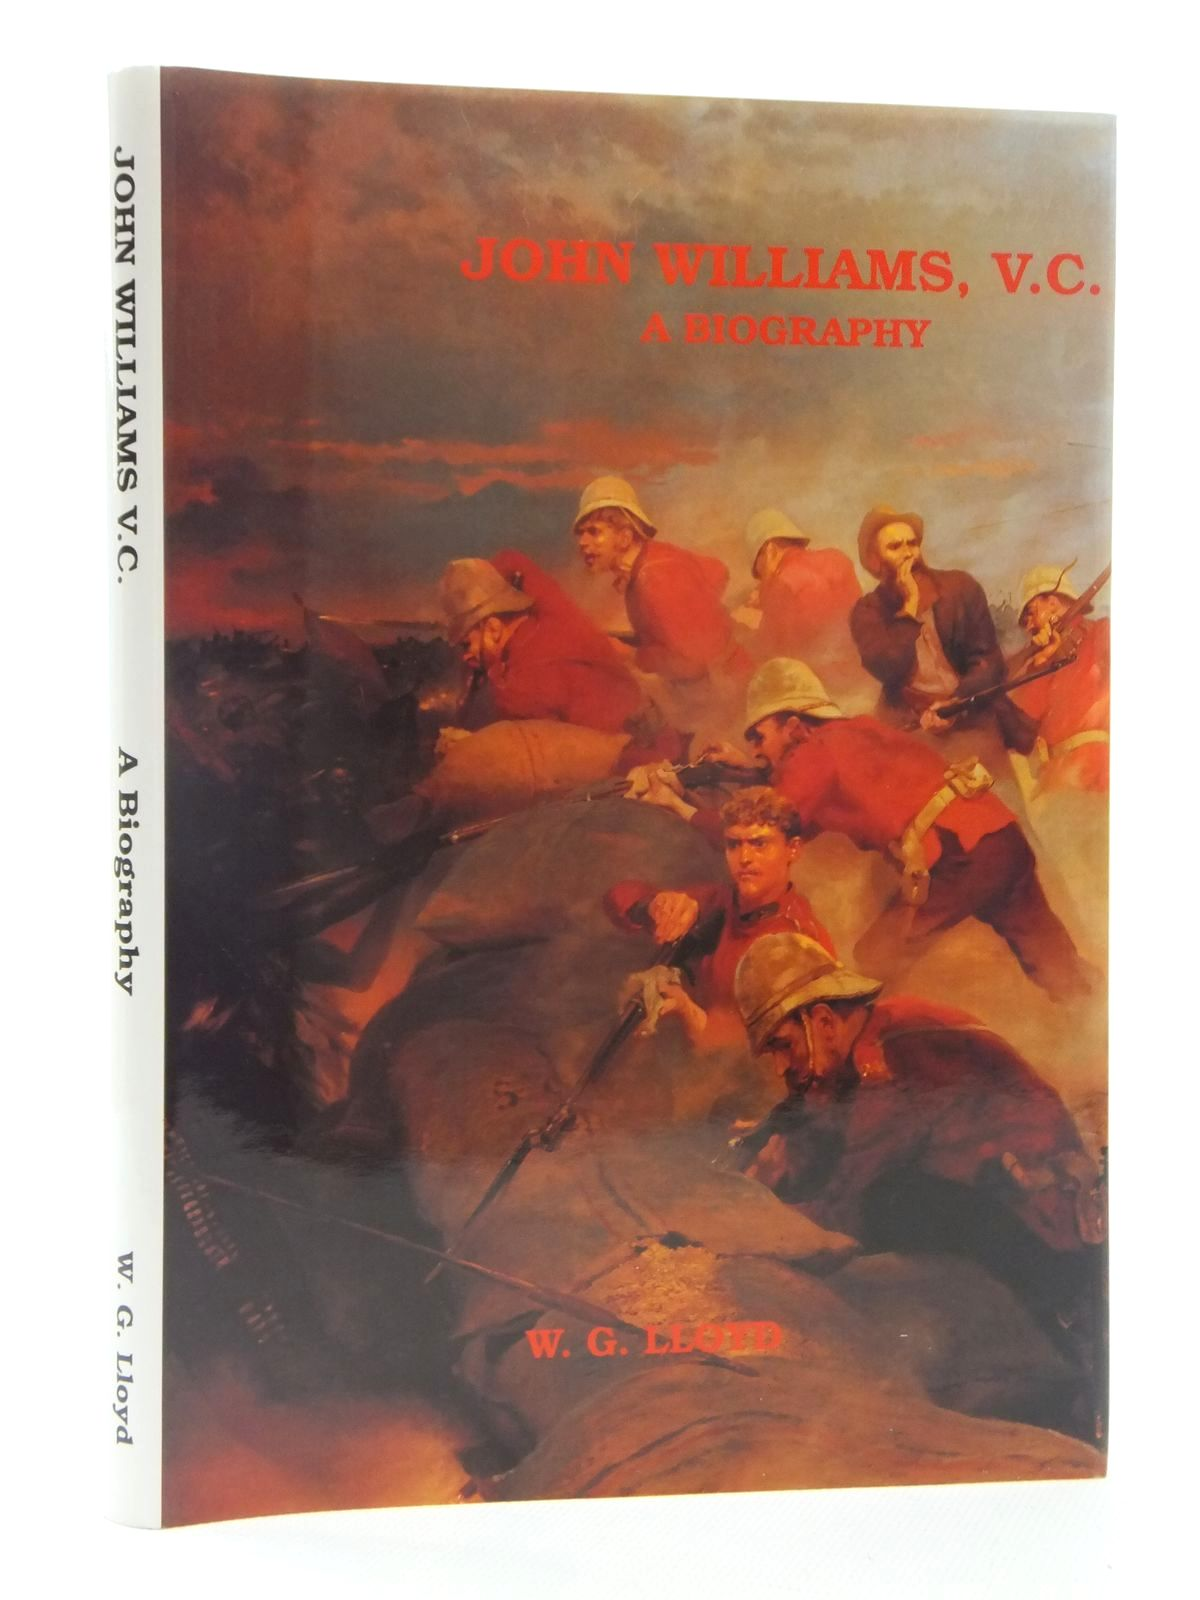 Photo of JOHN WILLIAMS V.C.: A BIOGRAPHY written by Lloyd, W.G. published by W.G. Lloyd (STOCK CODE: 1815282)  for sale by Stella & Rose's Books